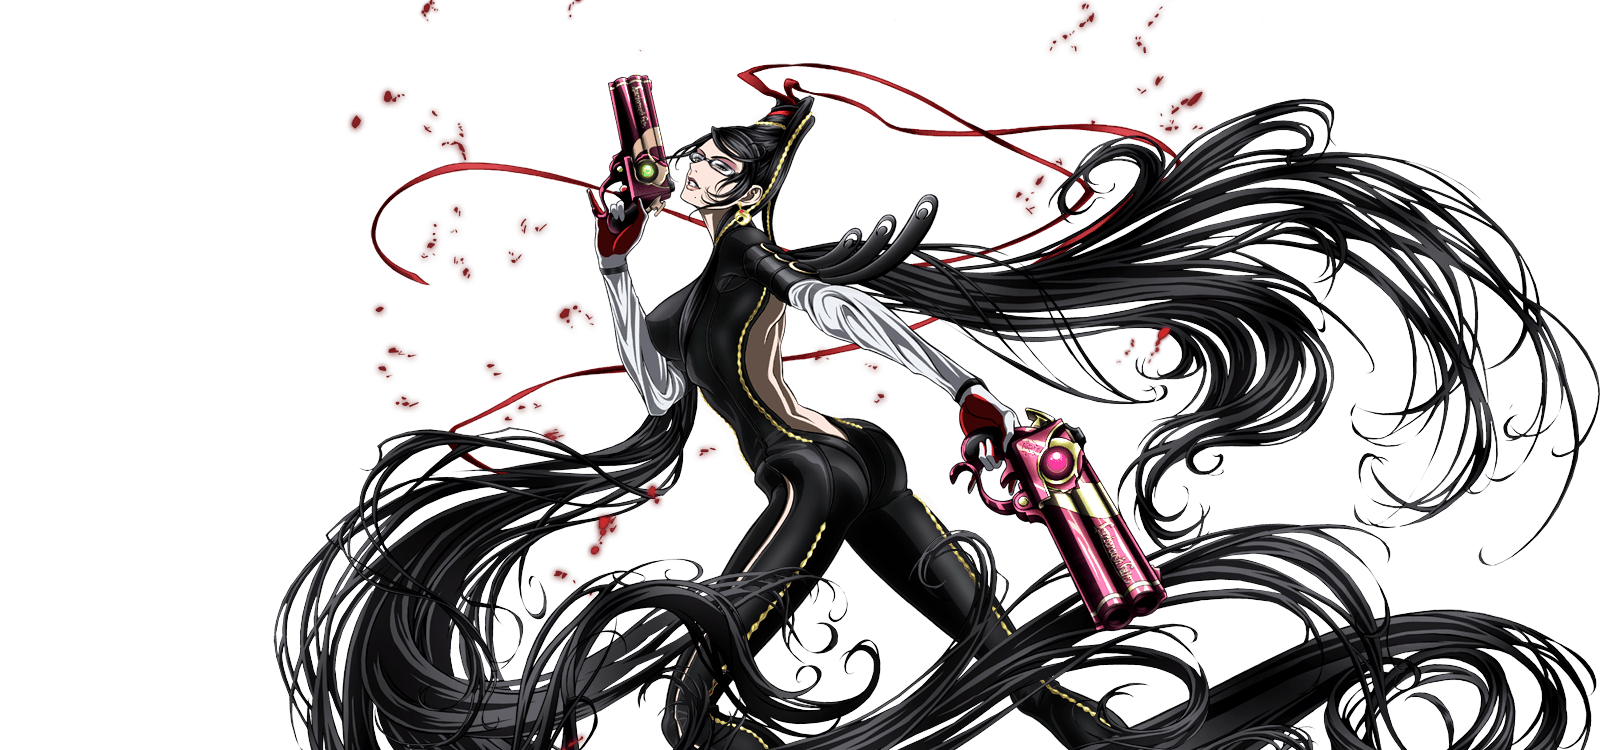 Bayonetta drawing anime. Bloody fate movie announced